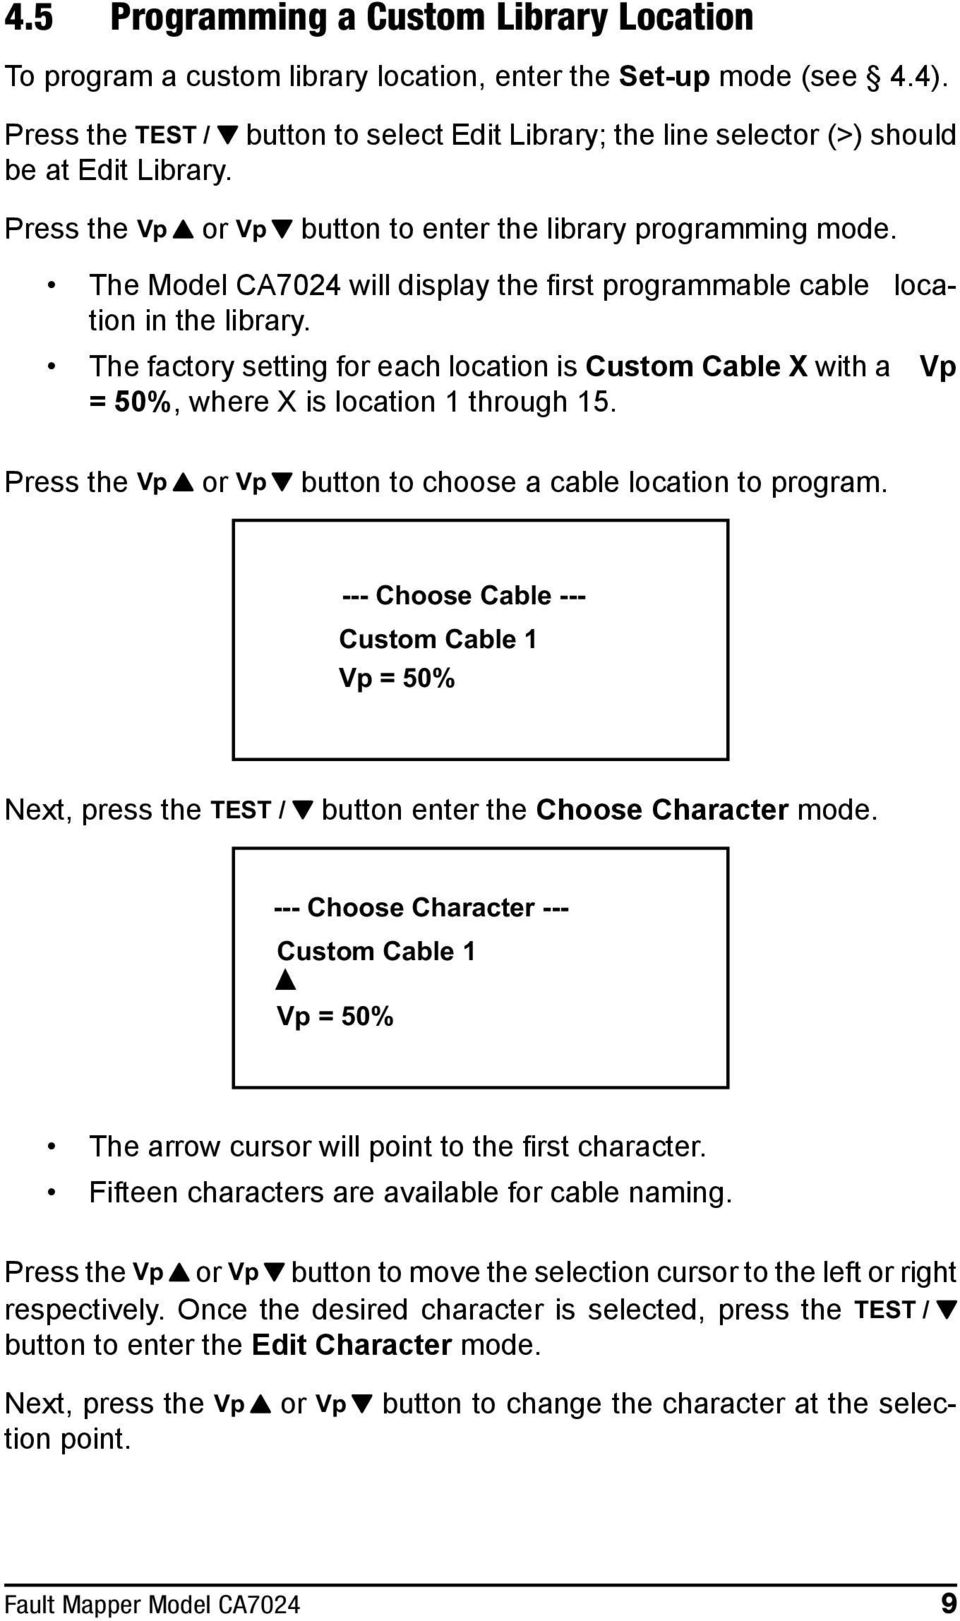 The Model CA7024 will display the first programmable cable location in the library. The factory setting for each location is Custom Cable X with a Vp = 50%, where X is location 1 through 15.